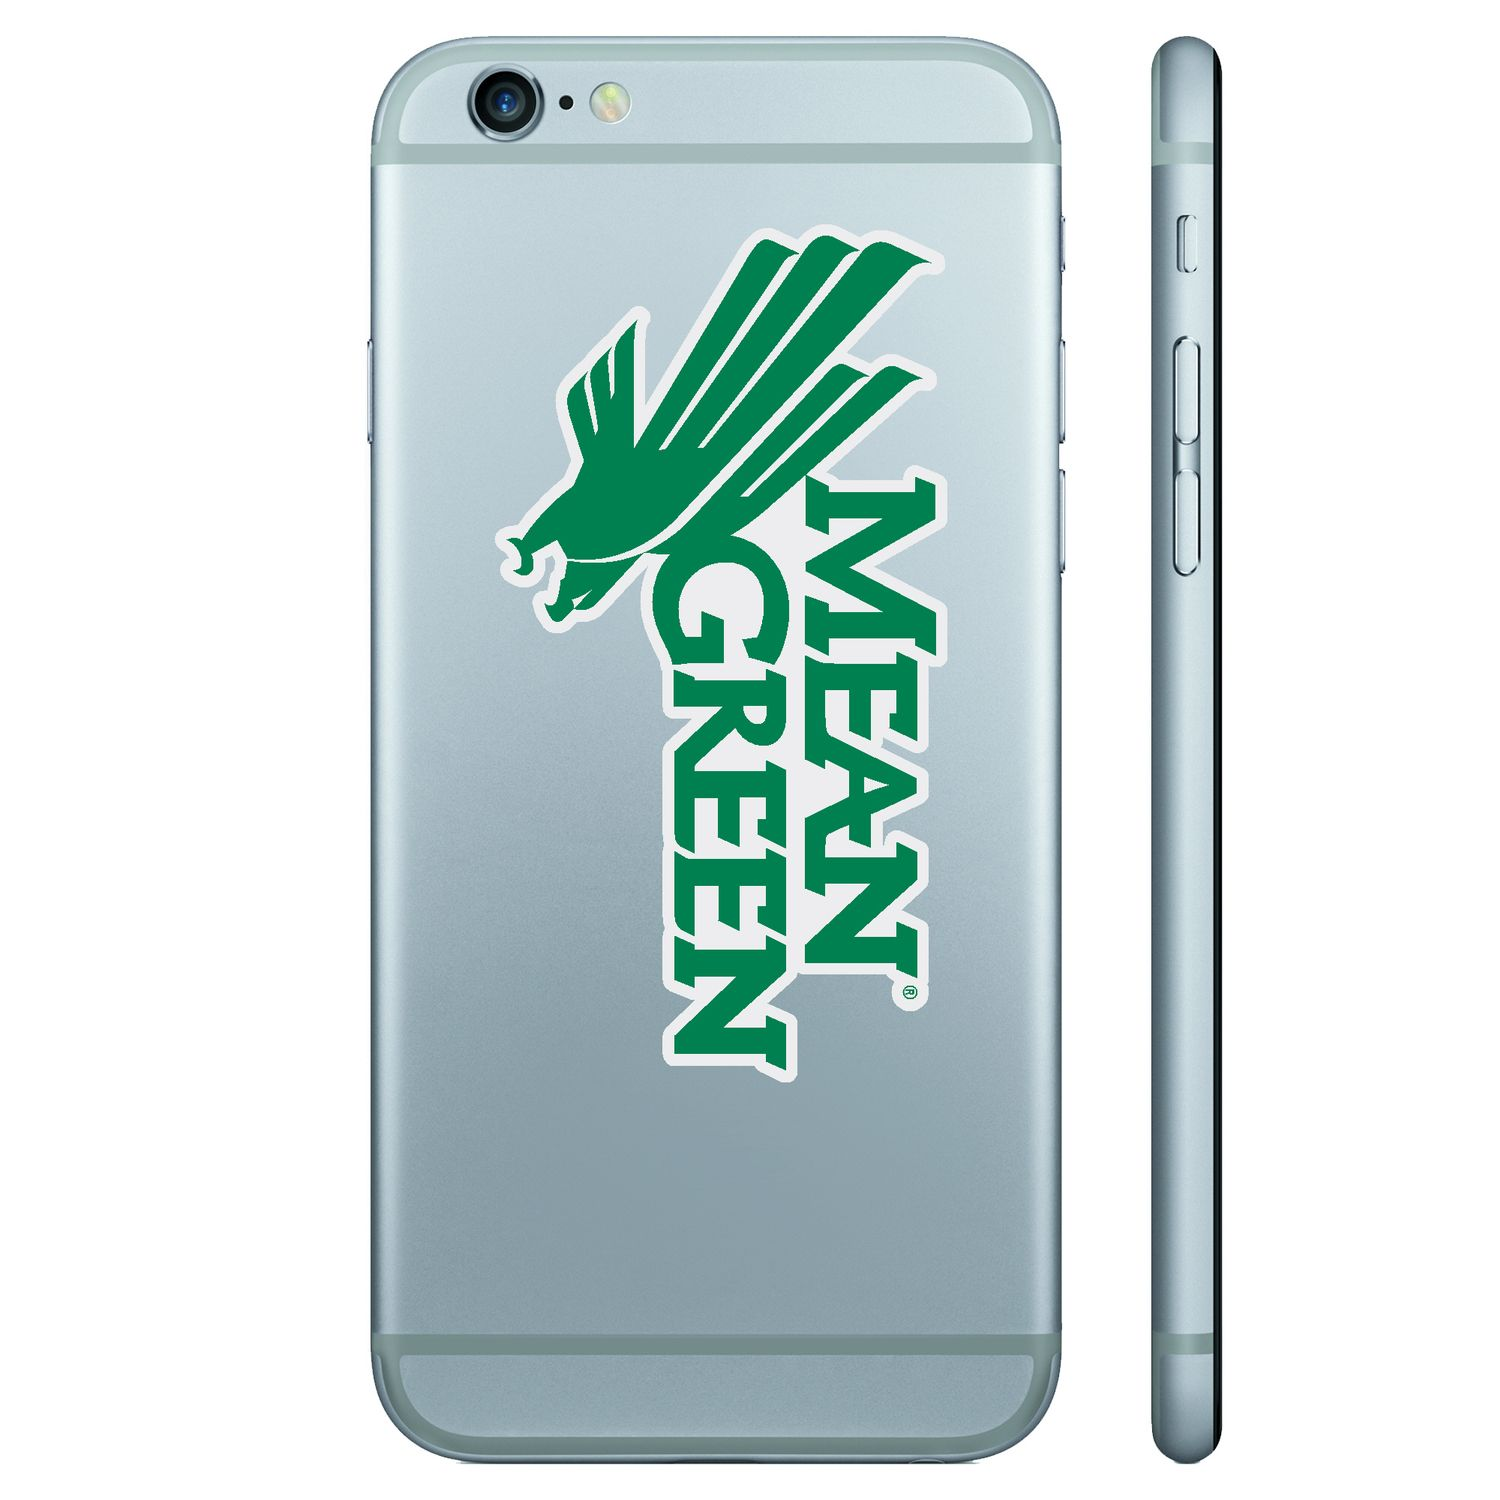 University of North Texas Color Shock Removable Decal